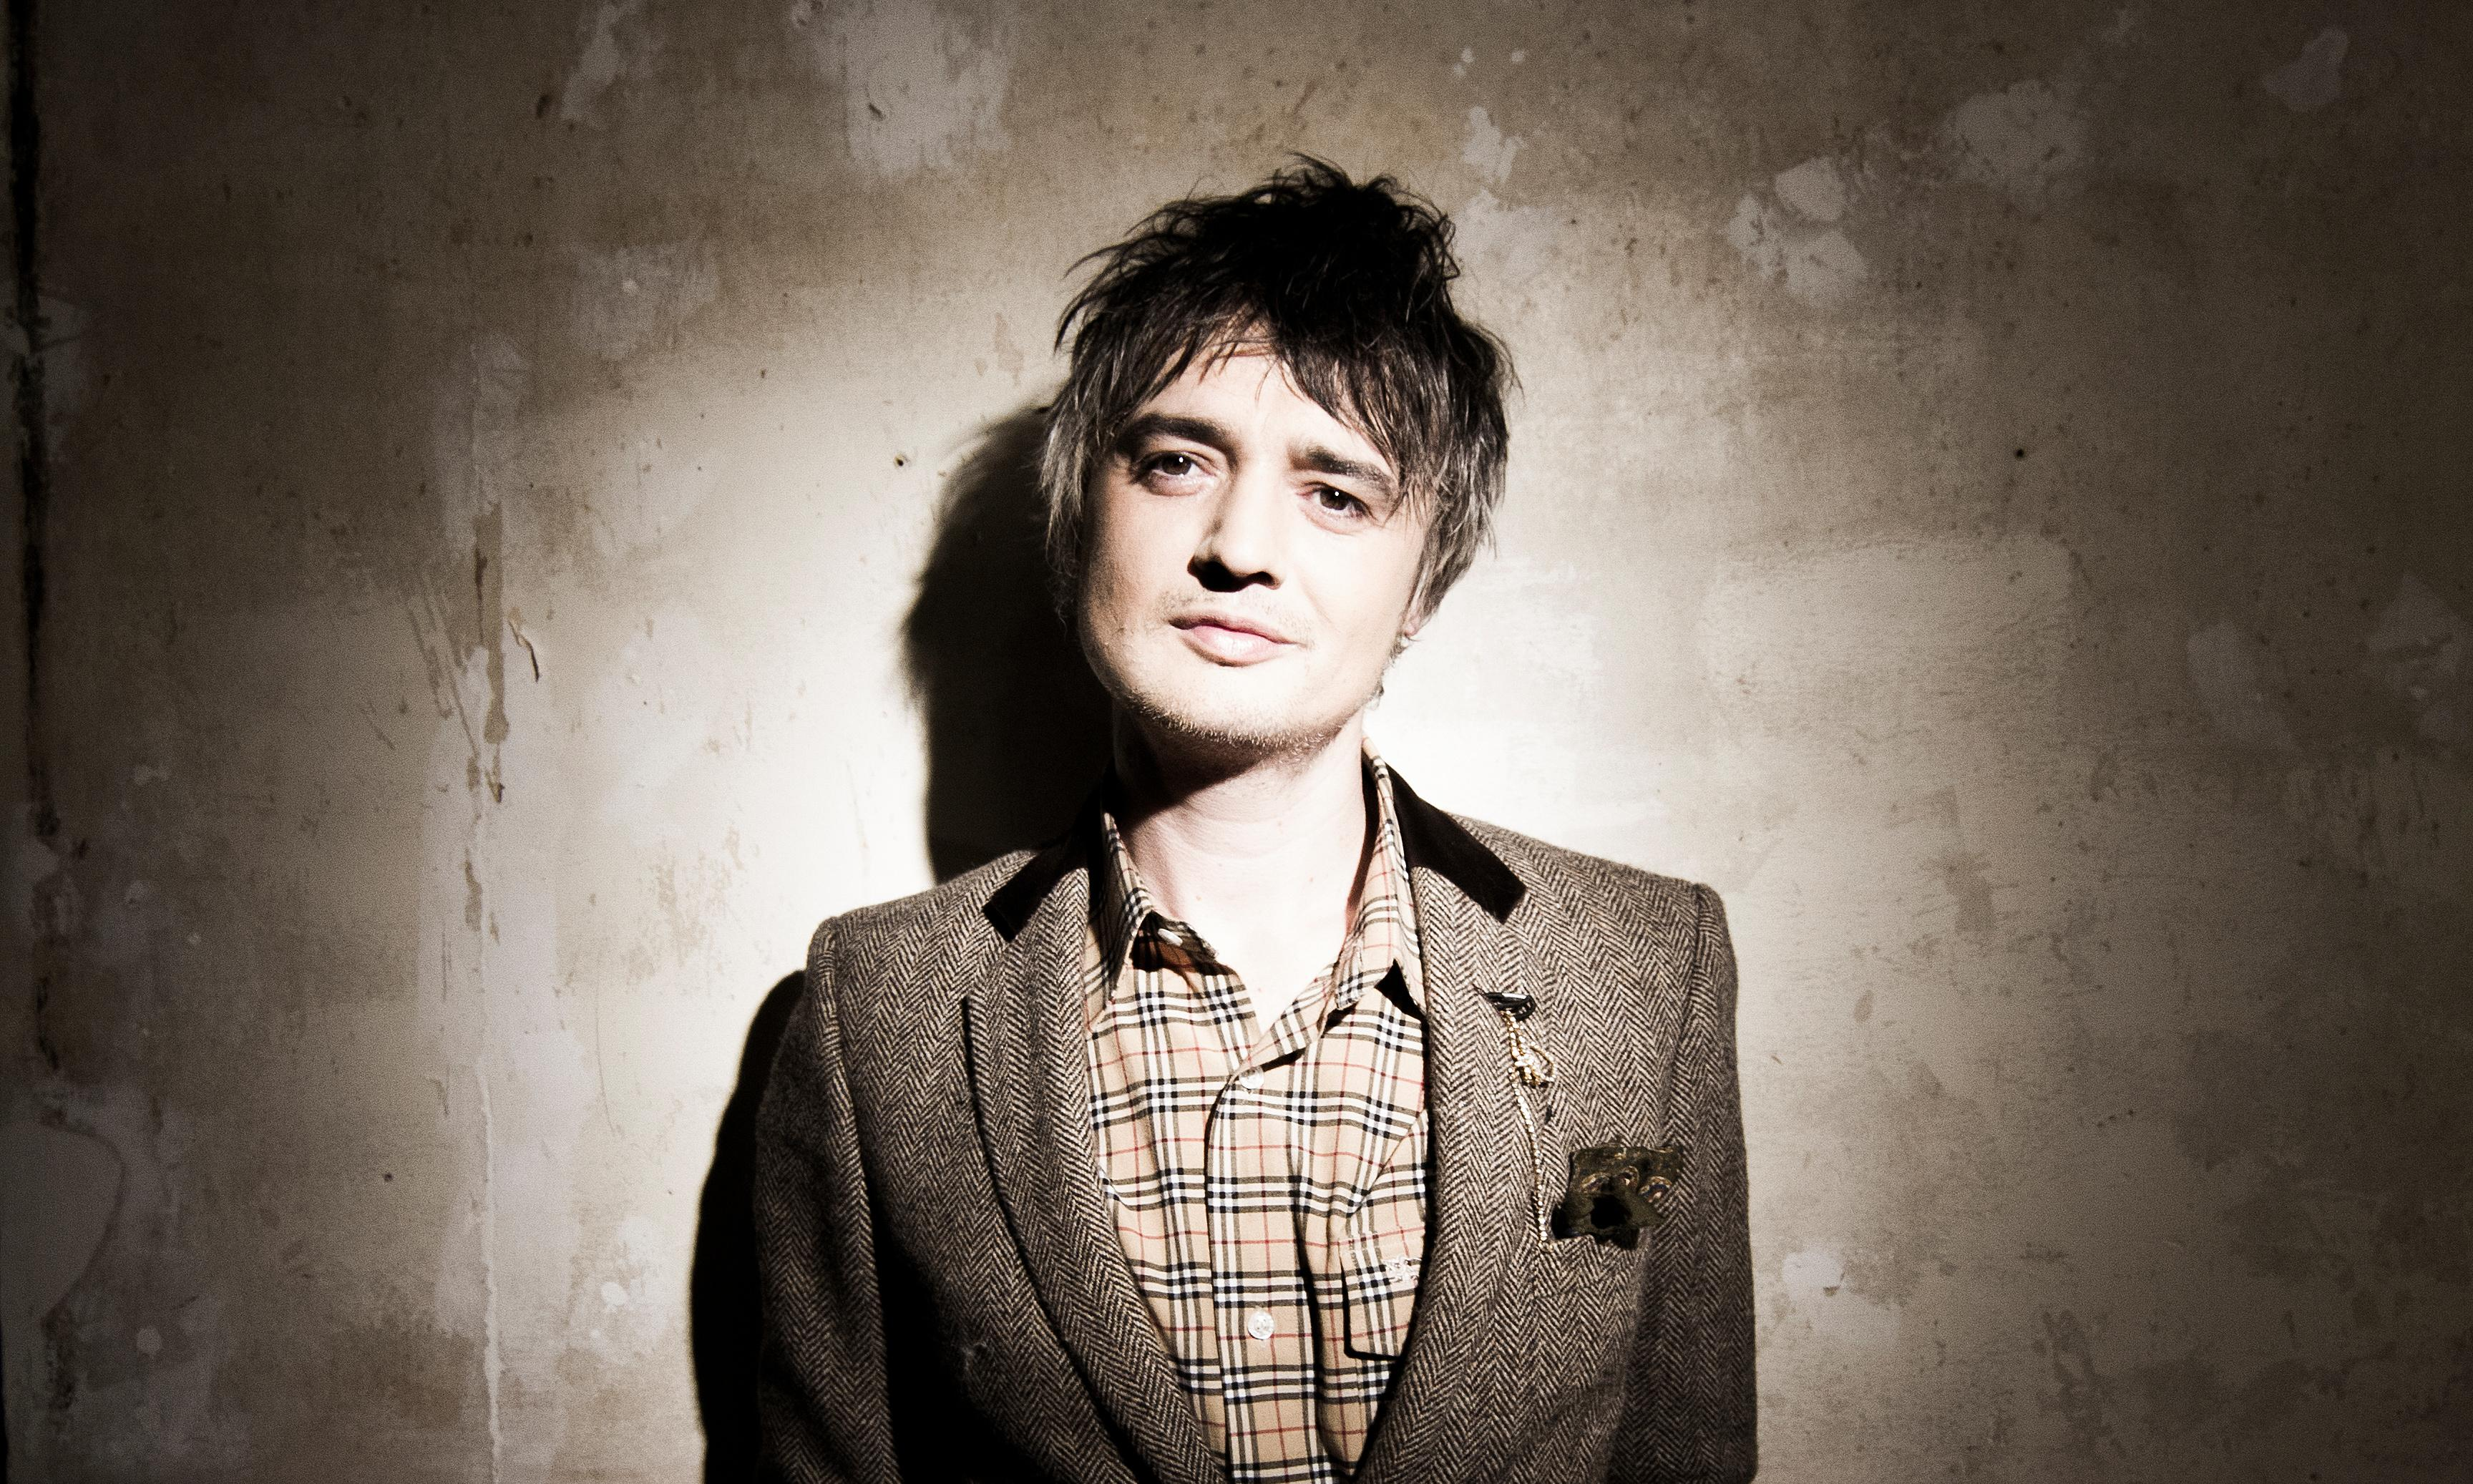 Peter Doherty: 'If I was drug free, I'd be a force to be reckoned with'